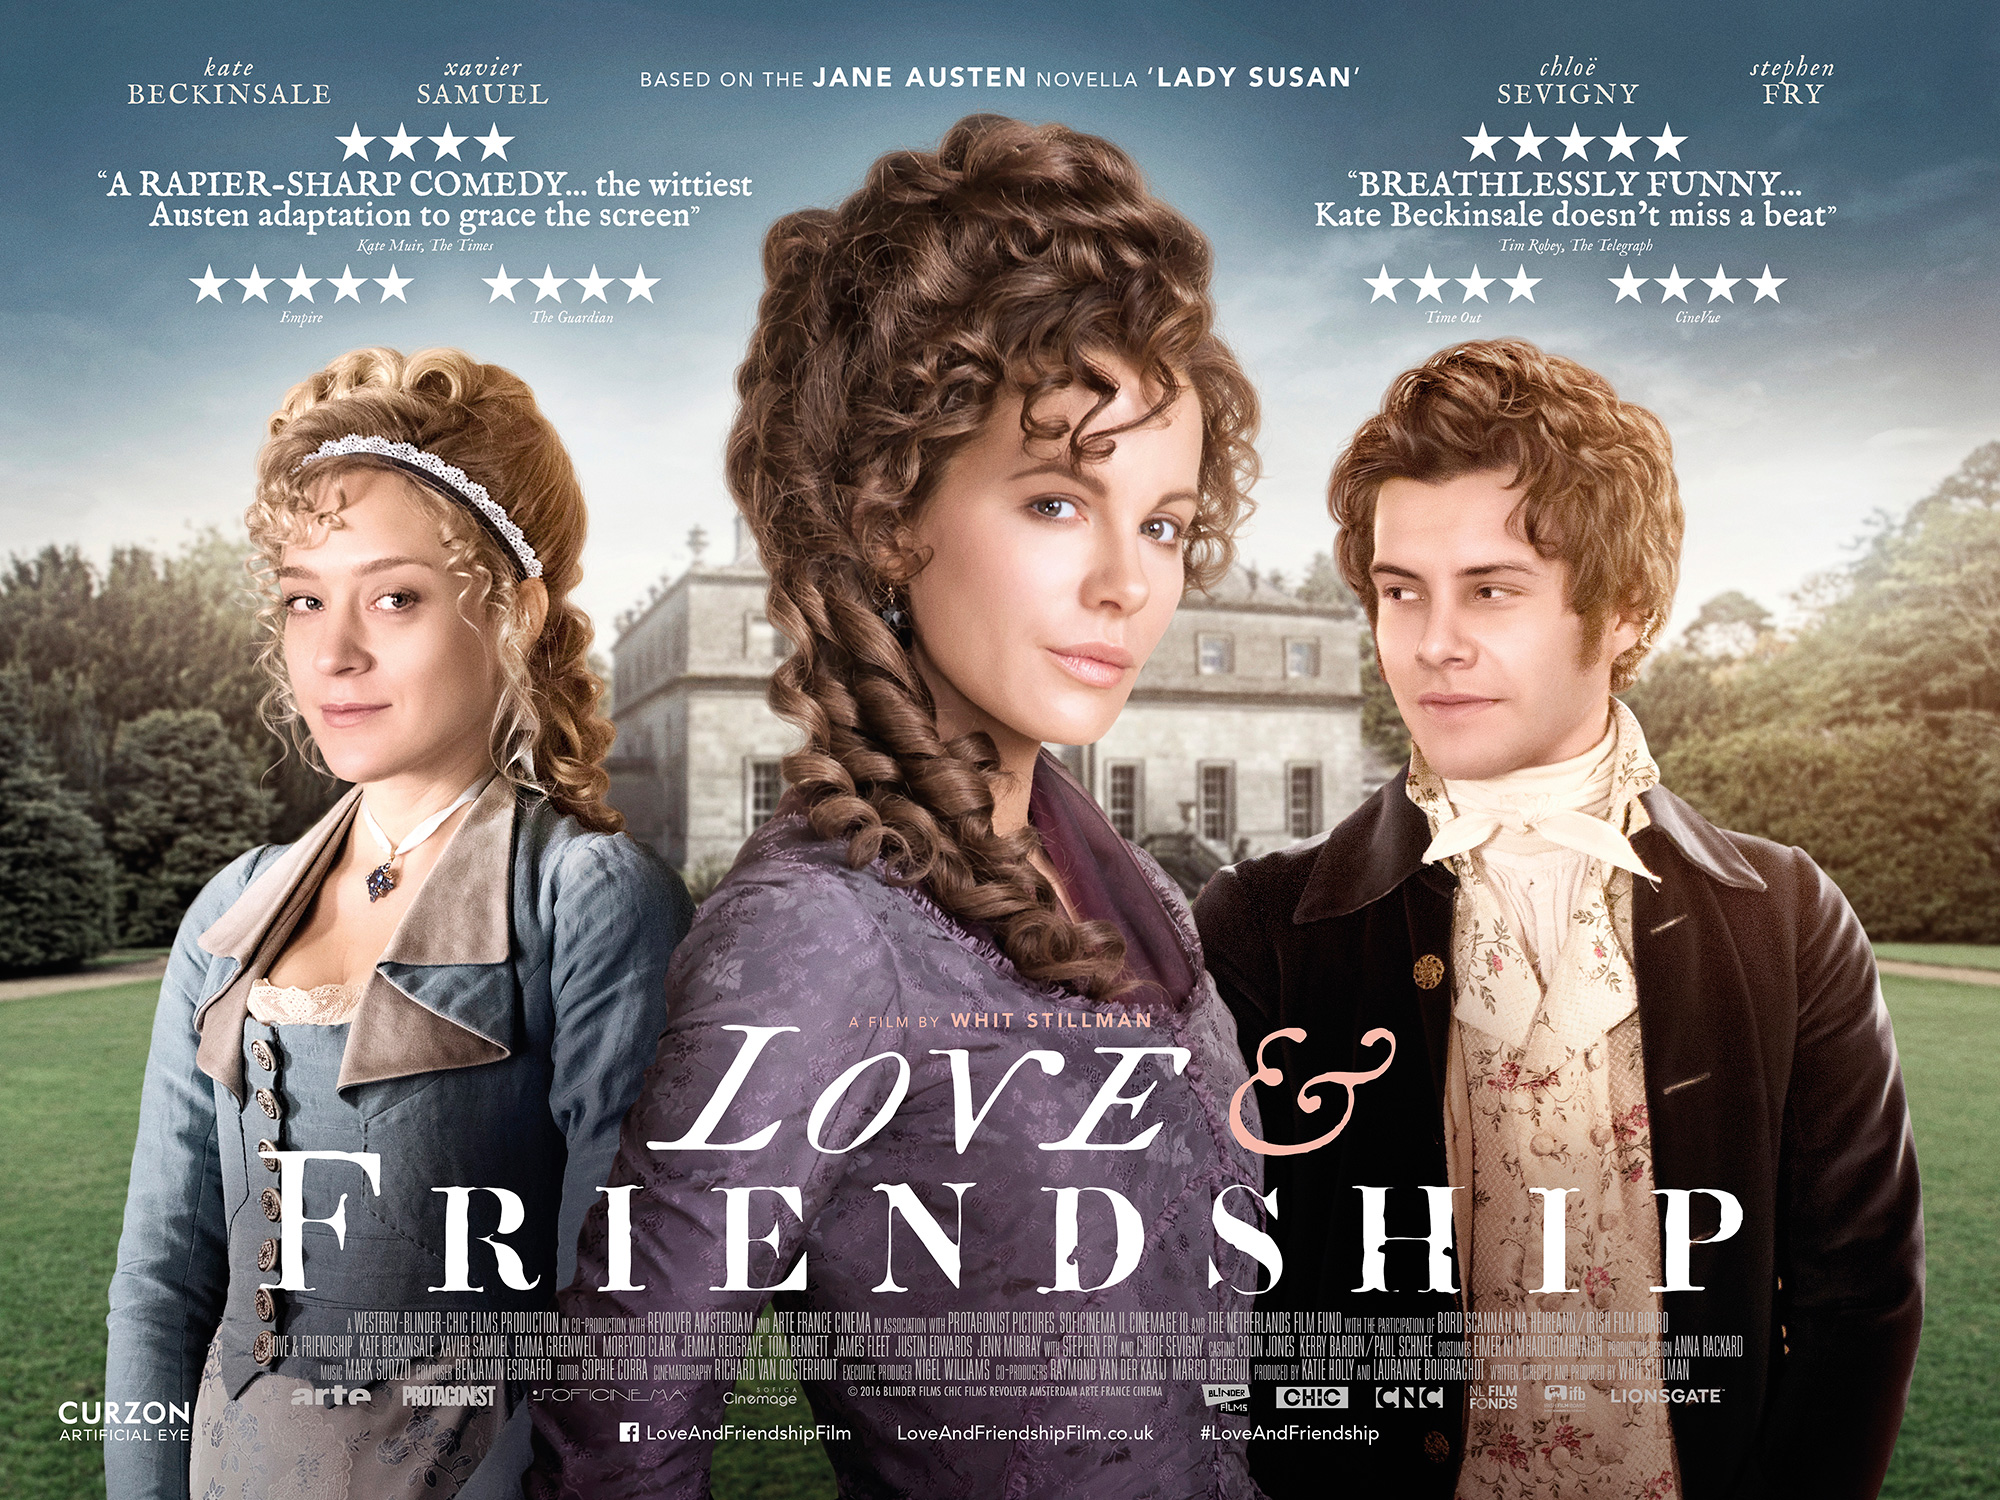 "Set in the 1790s, Love and Friendship centres on beautiful widow Lady Susan Vernon, who has come to the estate of her in-laws to wait out colorful rumors about her dalliances circulating through polite society. Whilst there, she decides to secure a husband for herself and her rather reluctant debutante daughter, Frederica.  This romantic comedy drama, based on Jane Austen's novel, ""Lady Susan"", stars Kate Beckinsale as Lady Susan Vernon. She favours scandal without scruples and observes that ""Facts are horrid things"". The costumes are impeccable. ""Love and Friendship"" will continue our Christmas joy into the New Year."